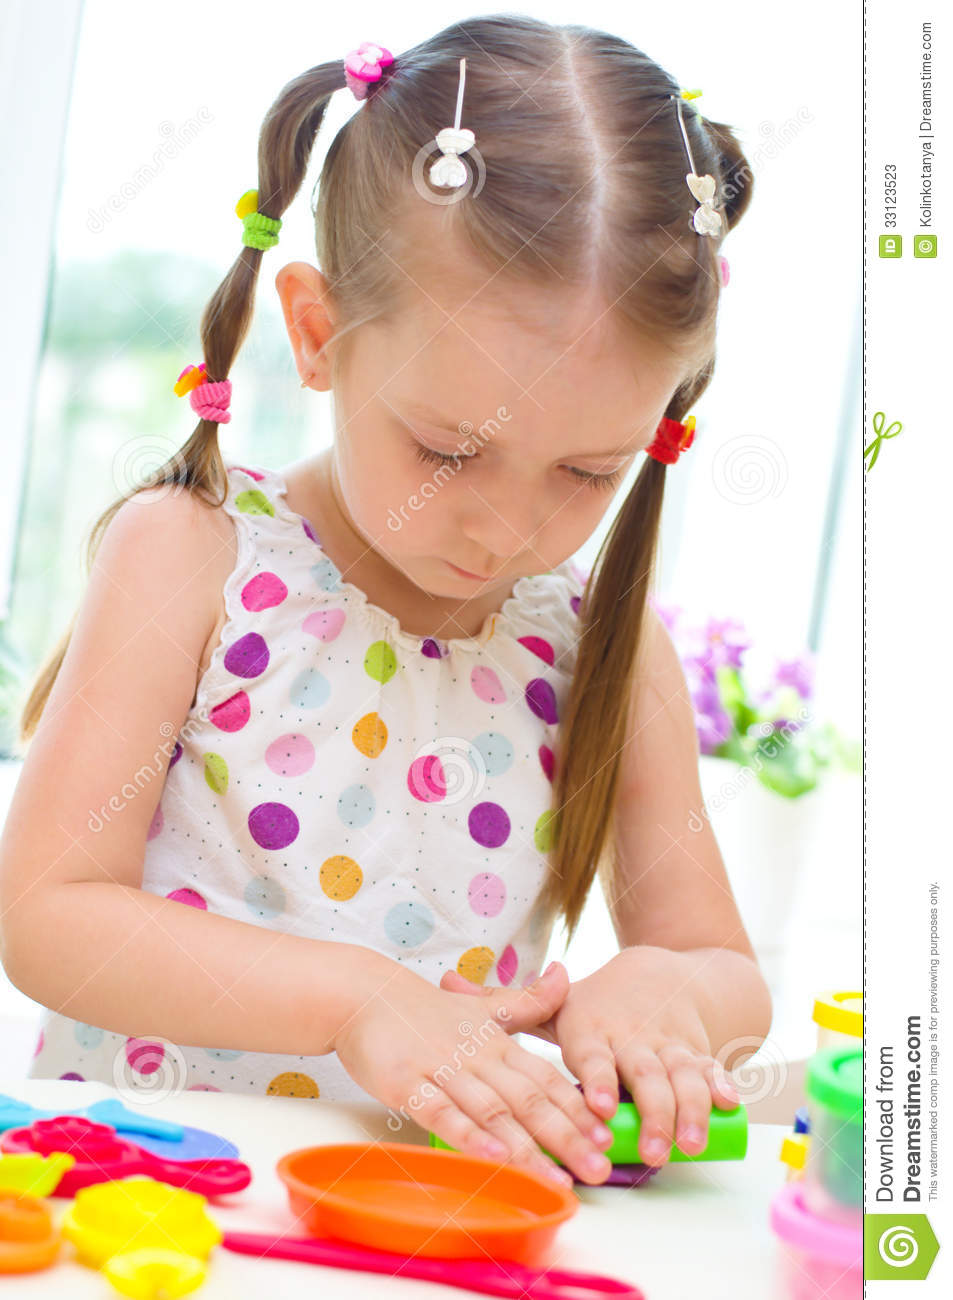 Play With Patterns Prints And Lots Of Accessories For: Child Playing With Play Dough Stock Photos